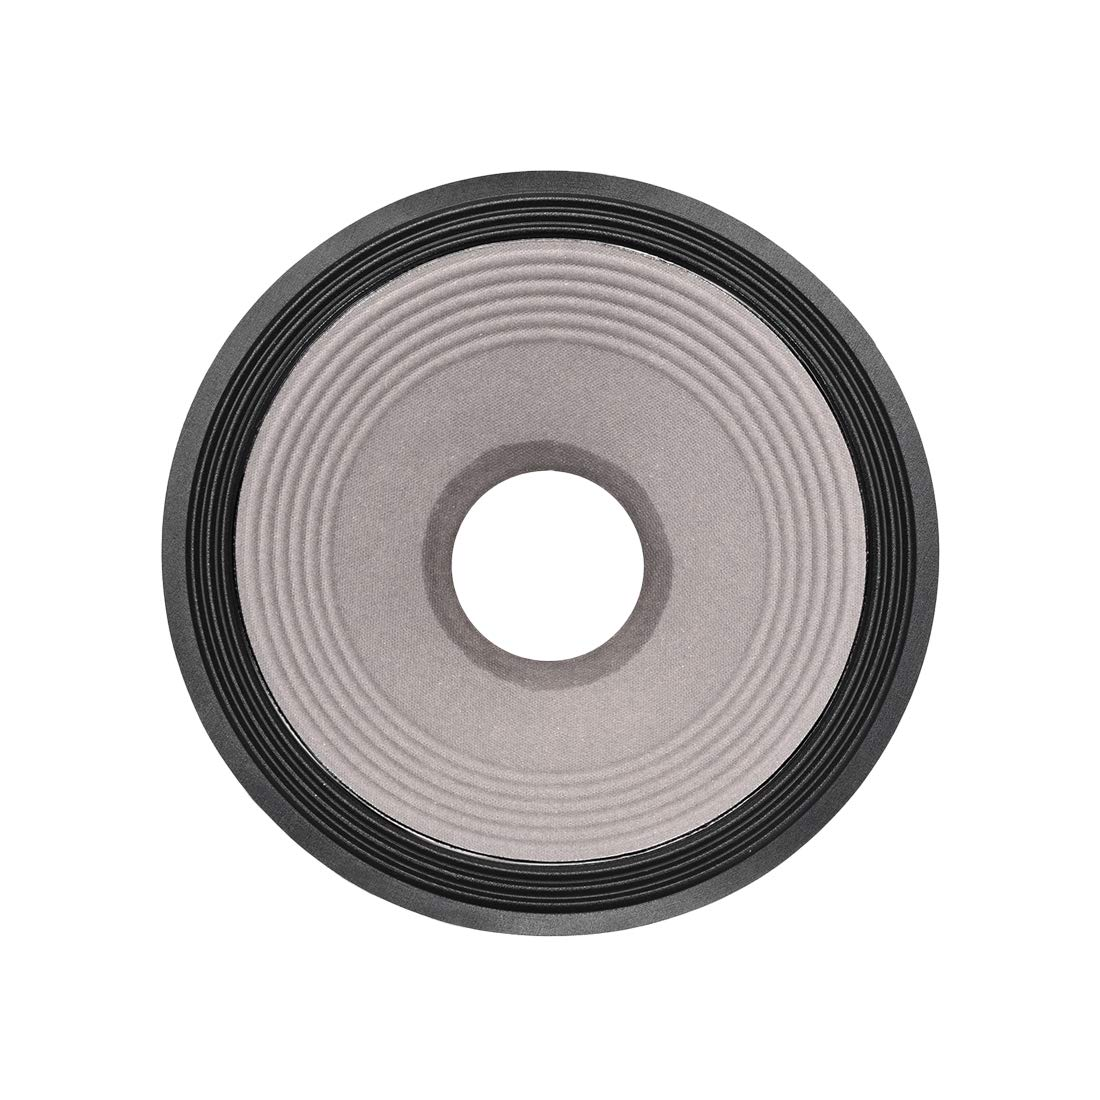 uxcell 12'' Paper Speaker Cone Subwoofer Drum Dot Paper 3'' Coil Diameter 2'' Depth with 3 Cloth Surround